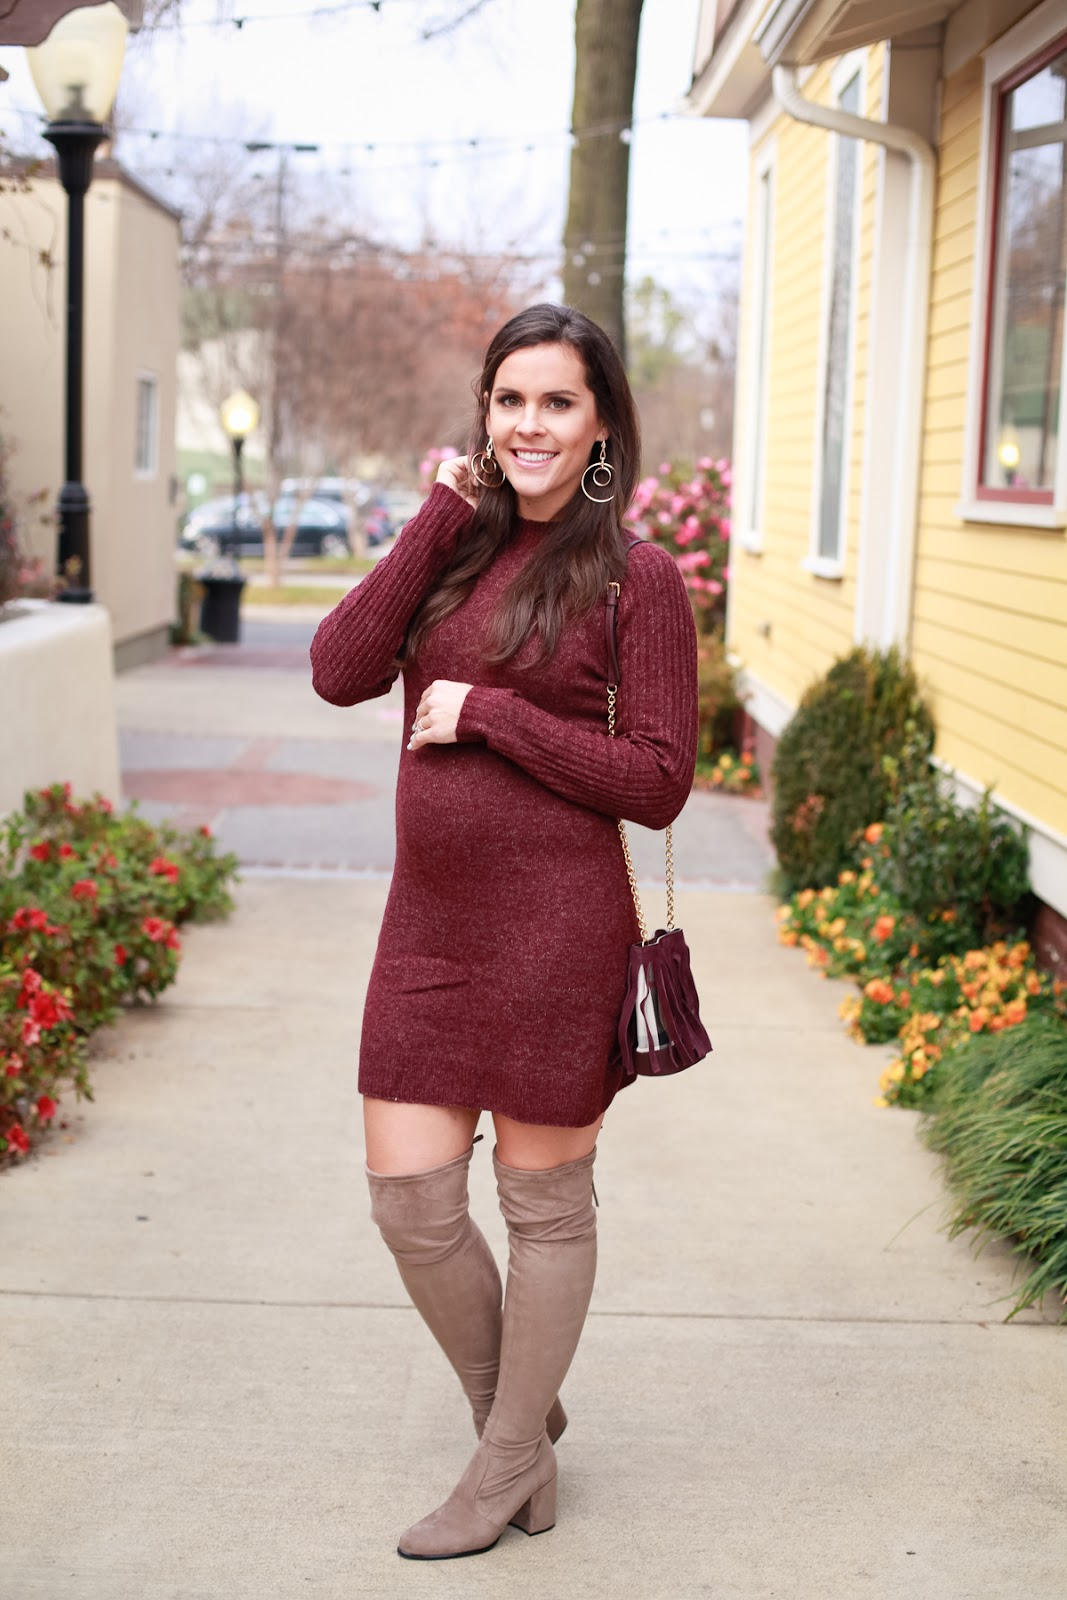 S Waters and Sweater Dress with Boots